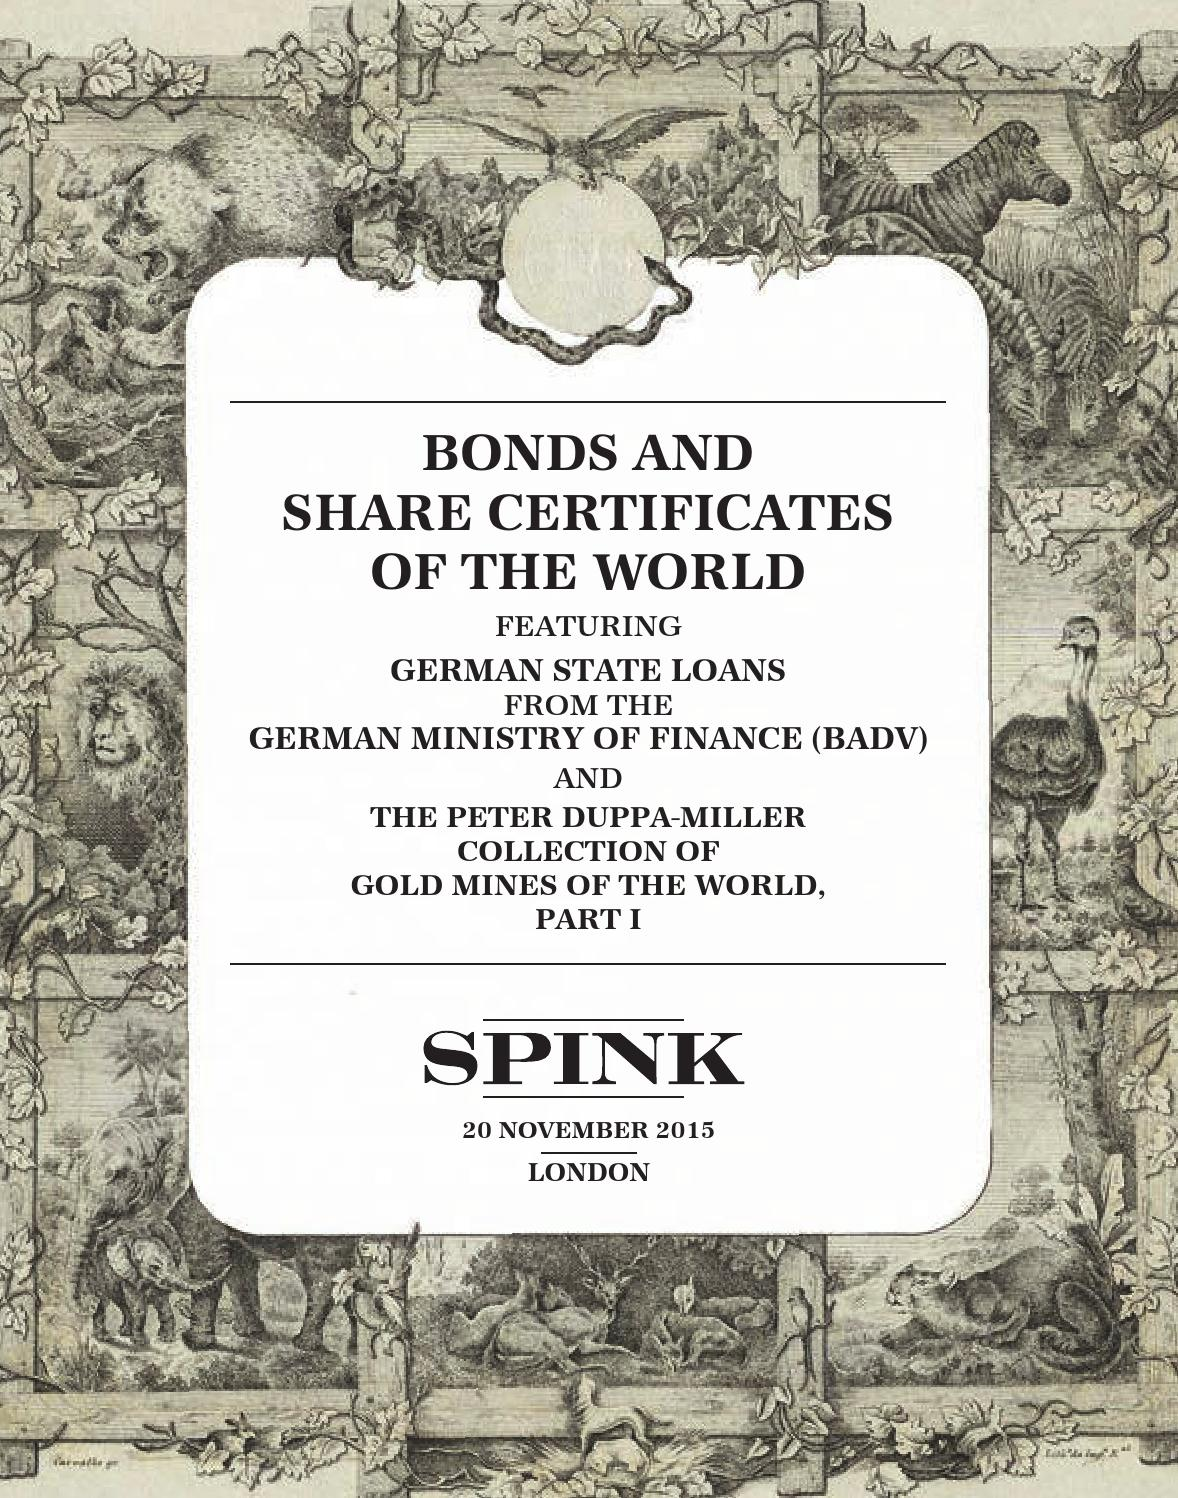 Bonds And Share Certificates Of The World 15019 By Spink And Son Page 1  15019